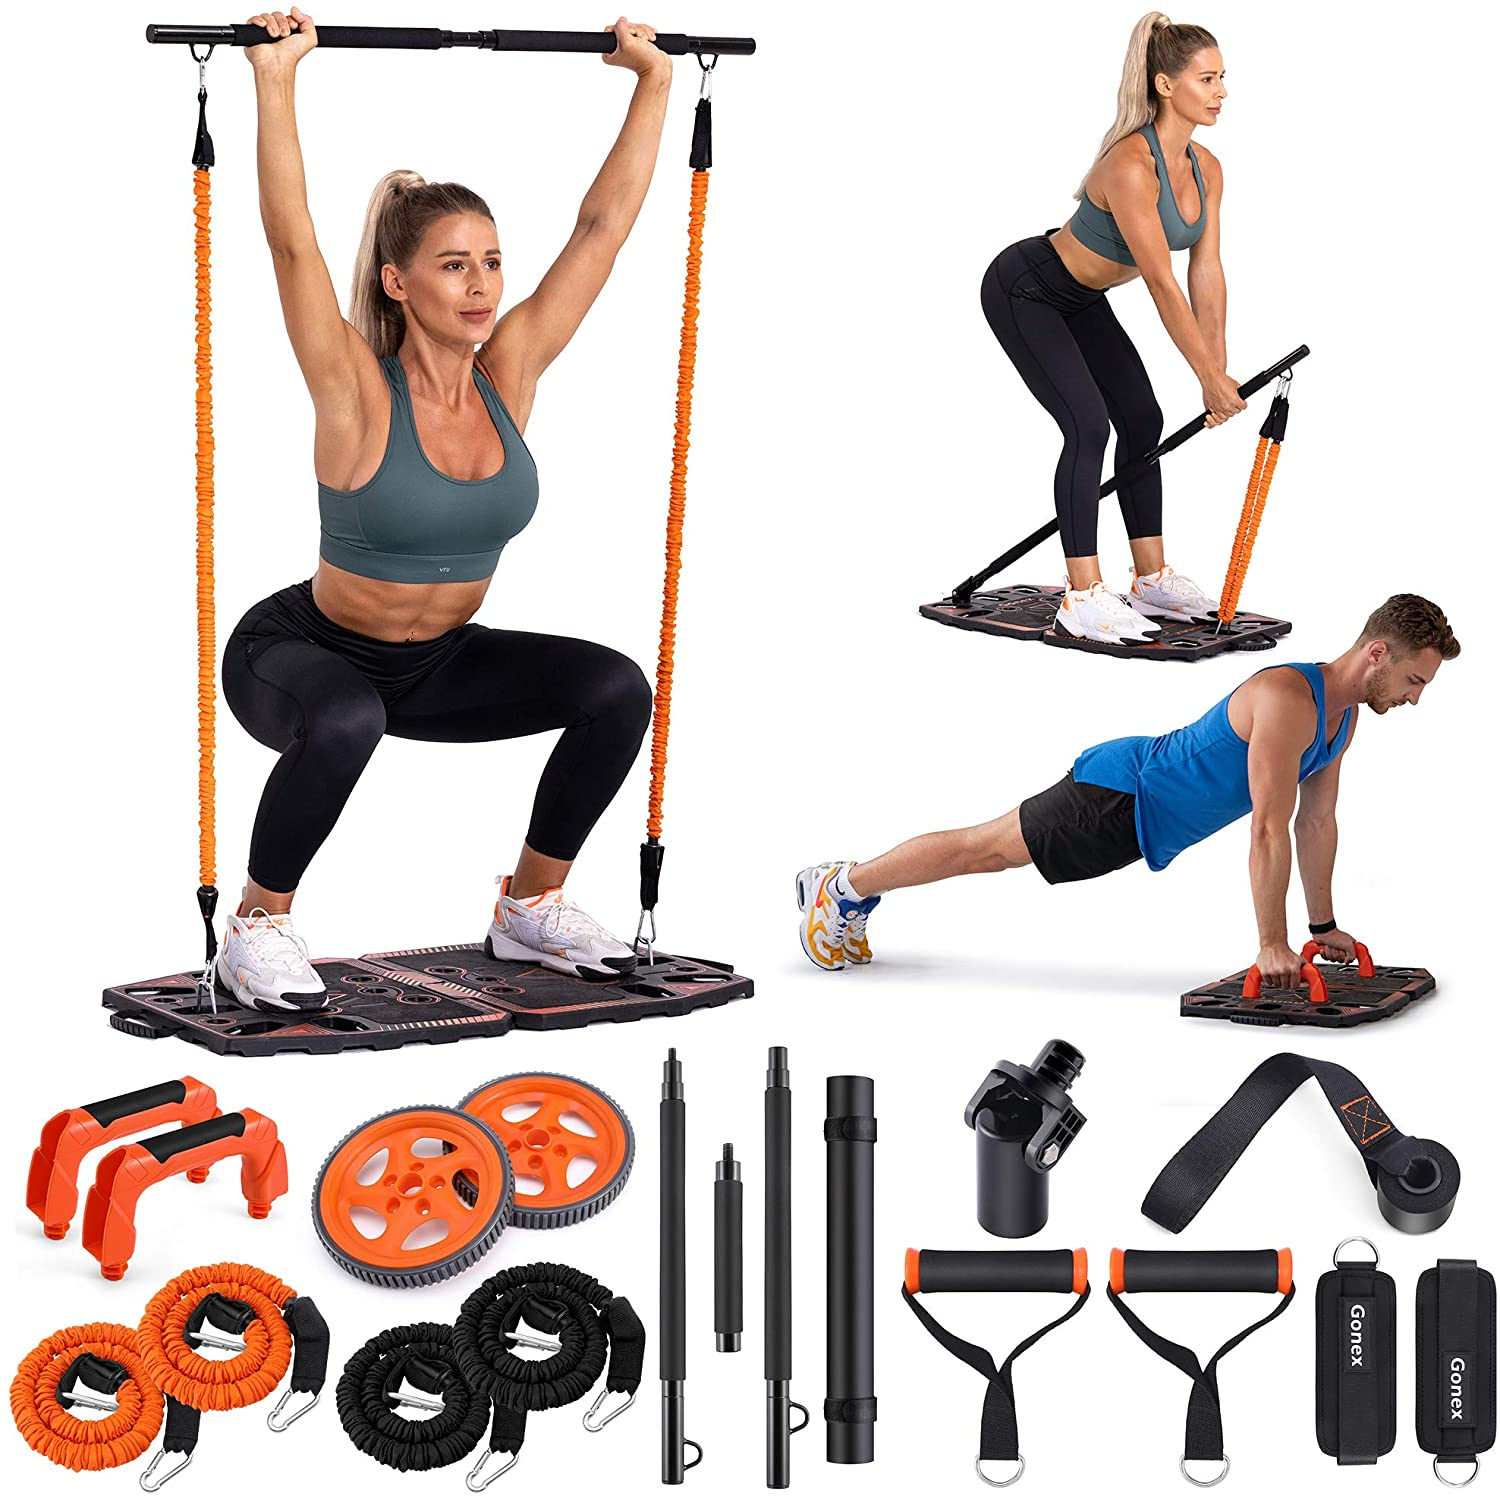 Review of Gonex Portable Home Gym Workout Equipment